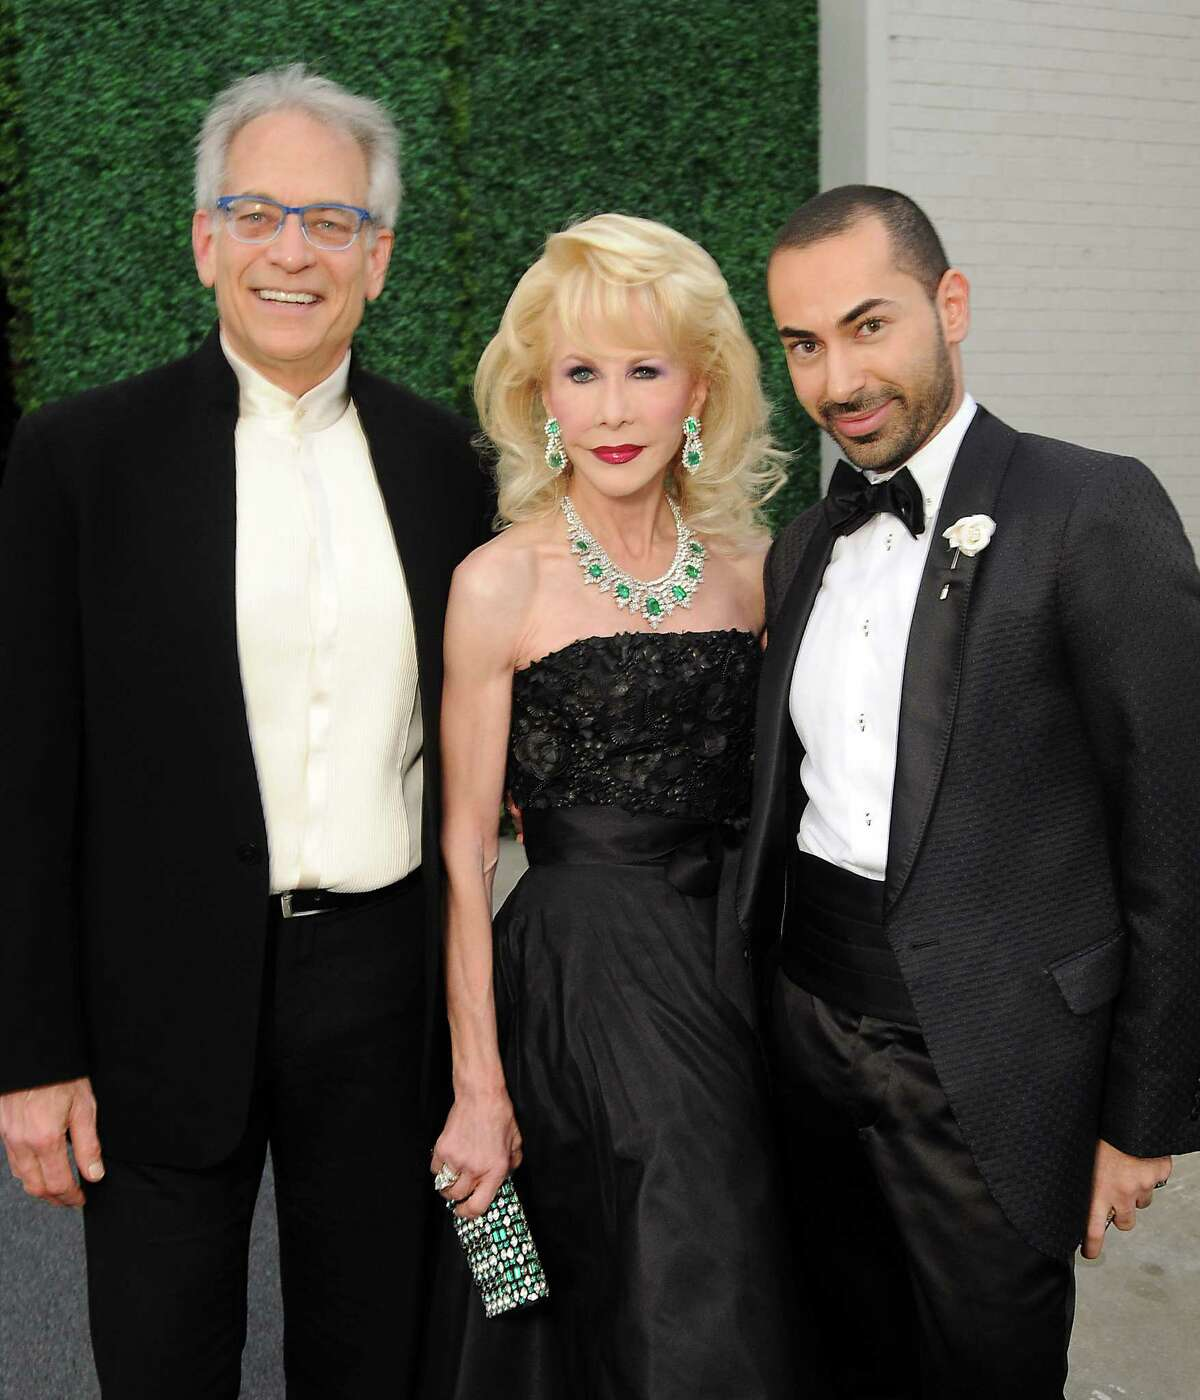 """From left: Mickey Rosmarin, Diane Lokey Farb and Fady Armanious at the 2014 Alley Theatre Ball """"Ultimate Construction"""" at the Silver Street Studios Saturday April 12, 2014."""